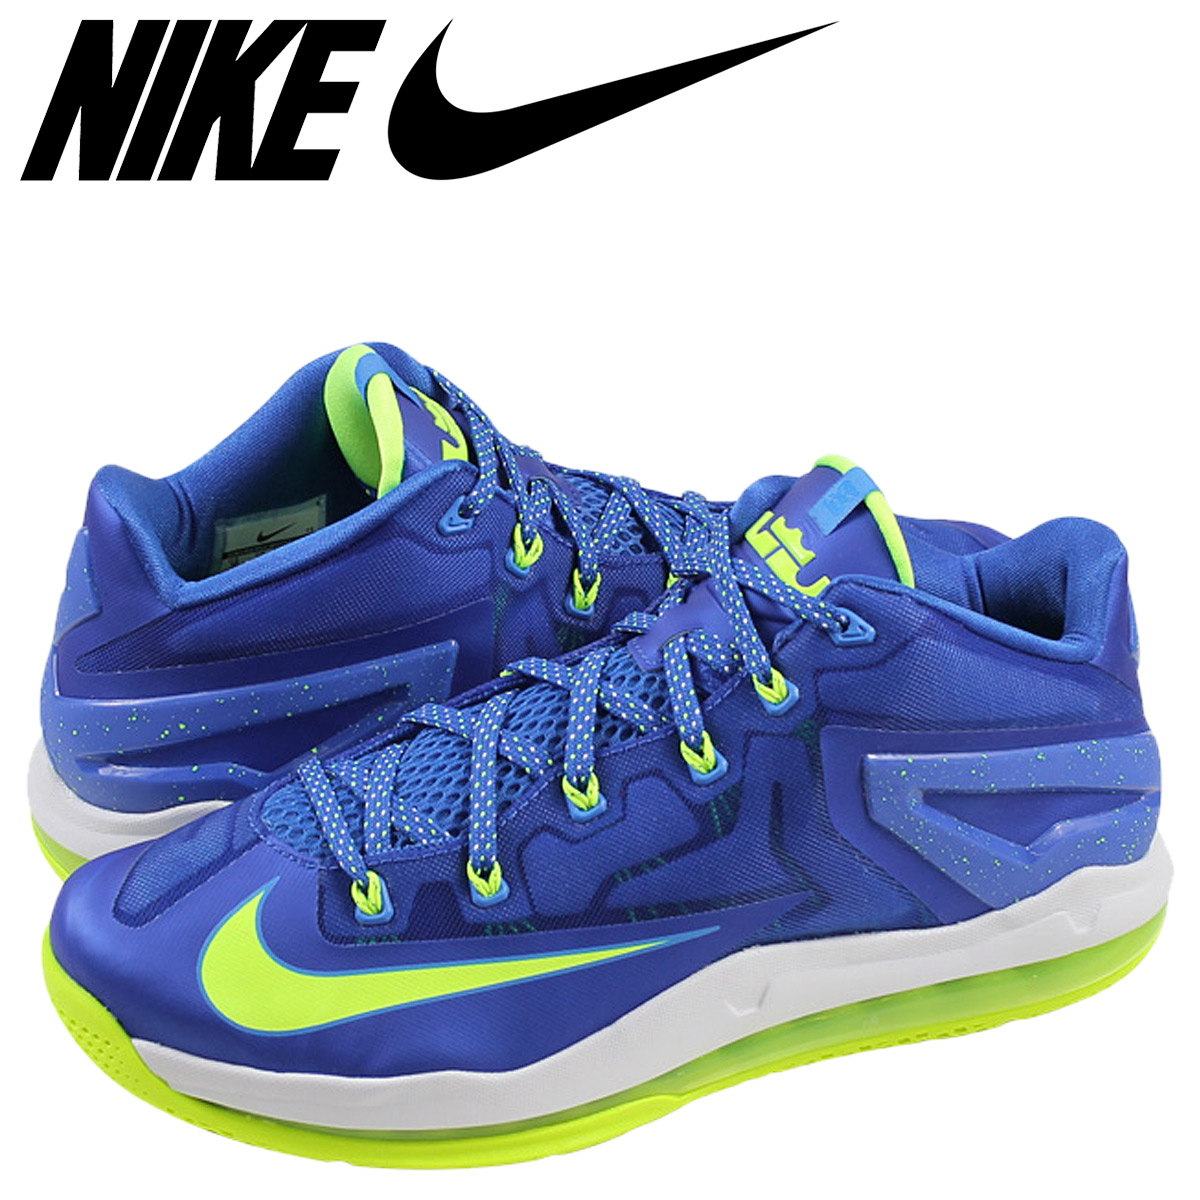 check out 6757f 0dd93 Nike NIKE LeBron sneakers LEBRON 11 LOW SPRITE LeBron low 11 sprite  642849-471 blue ...